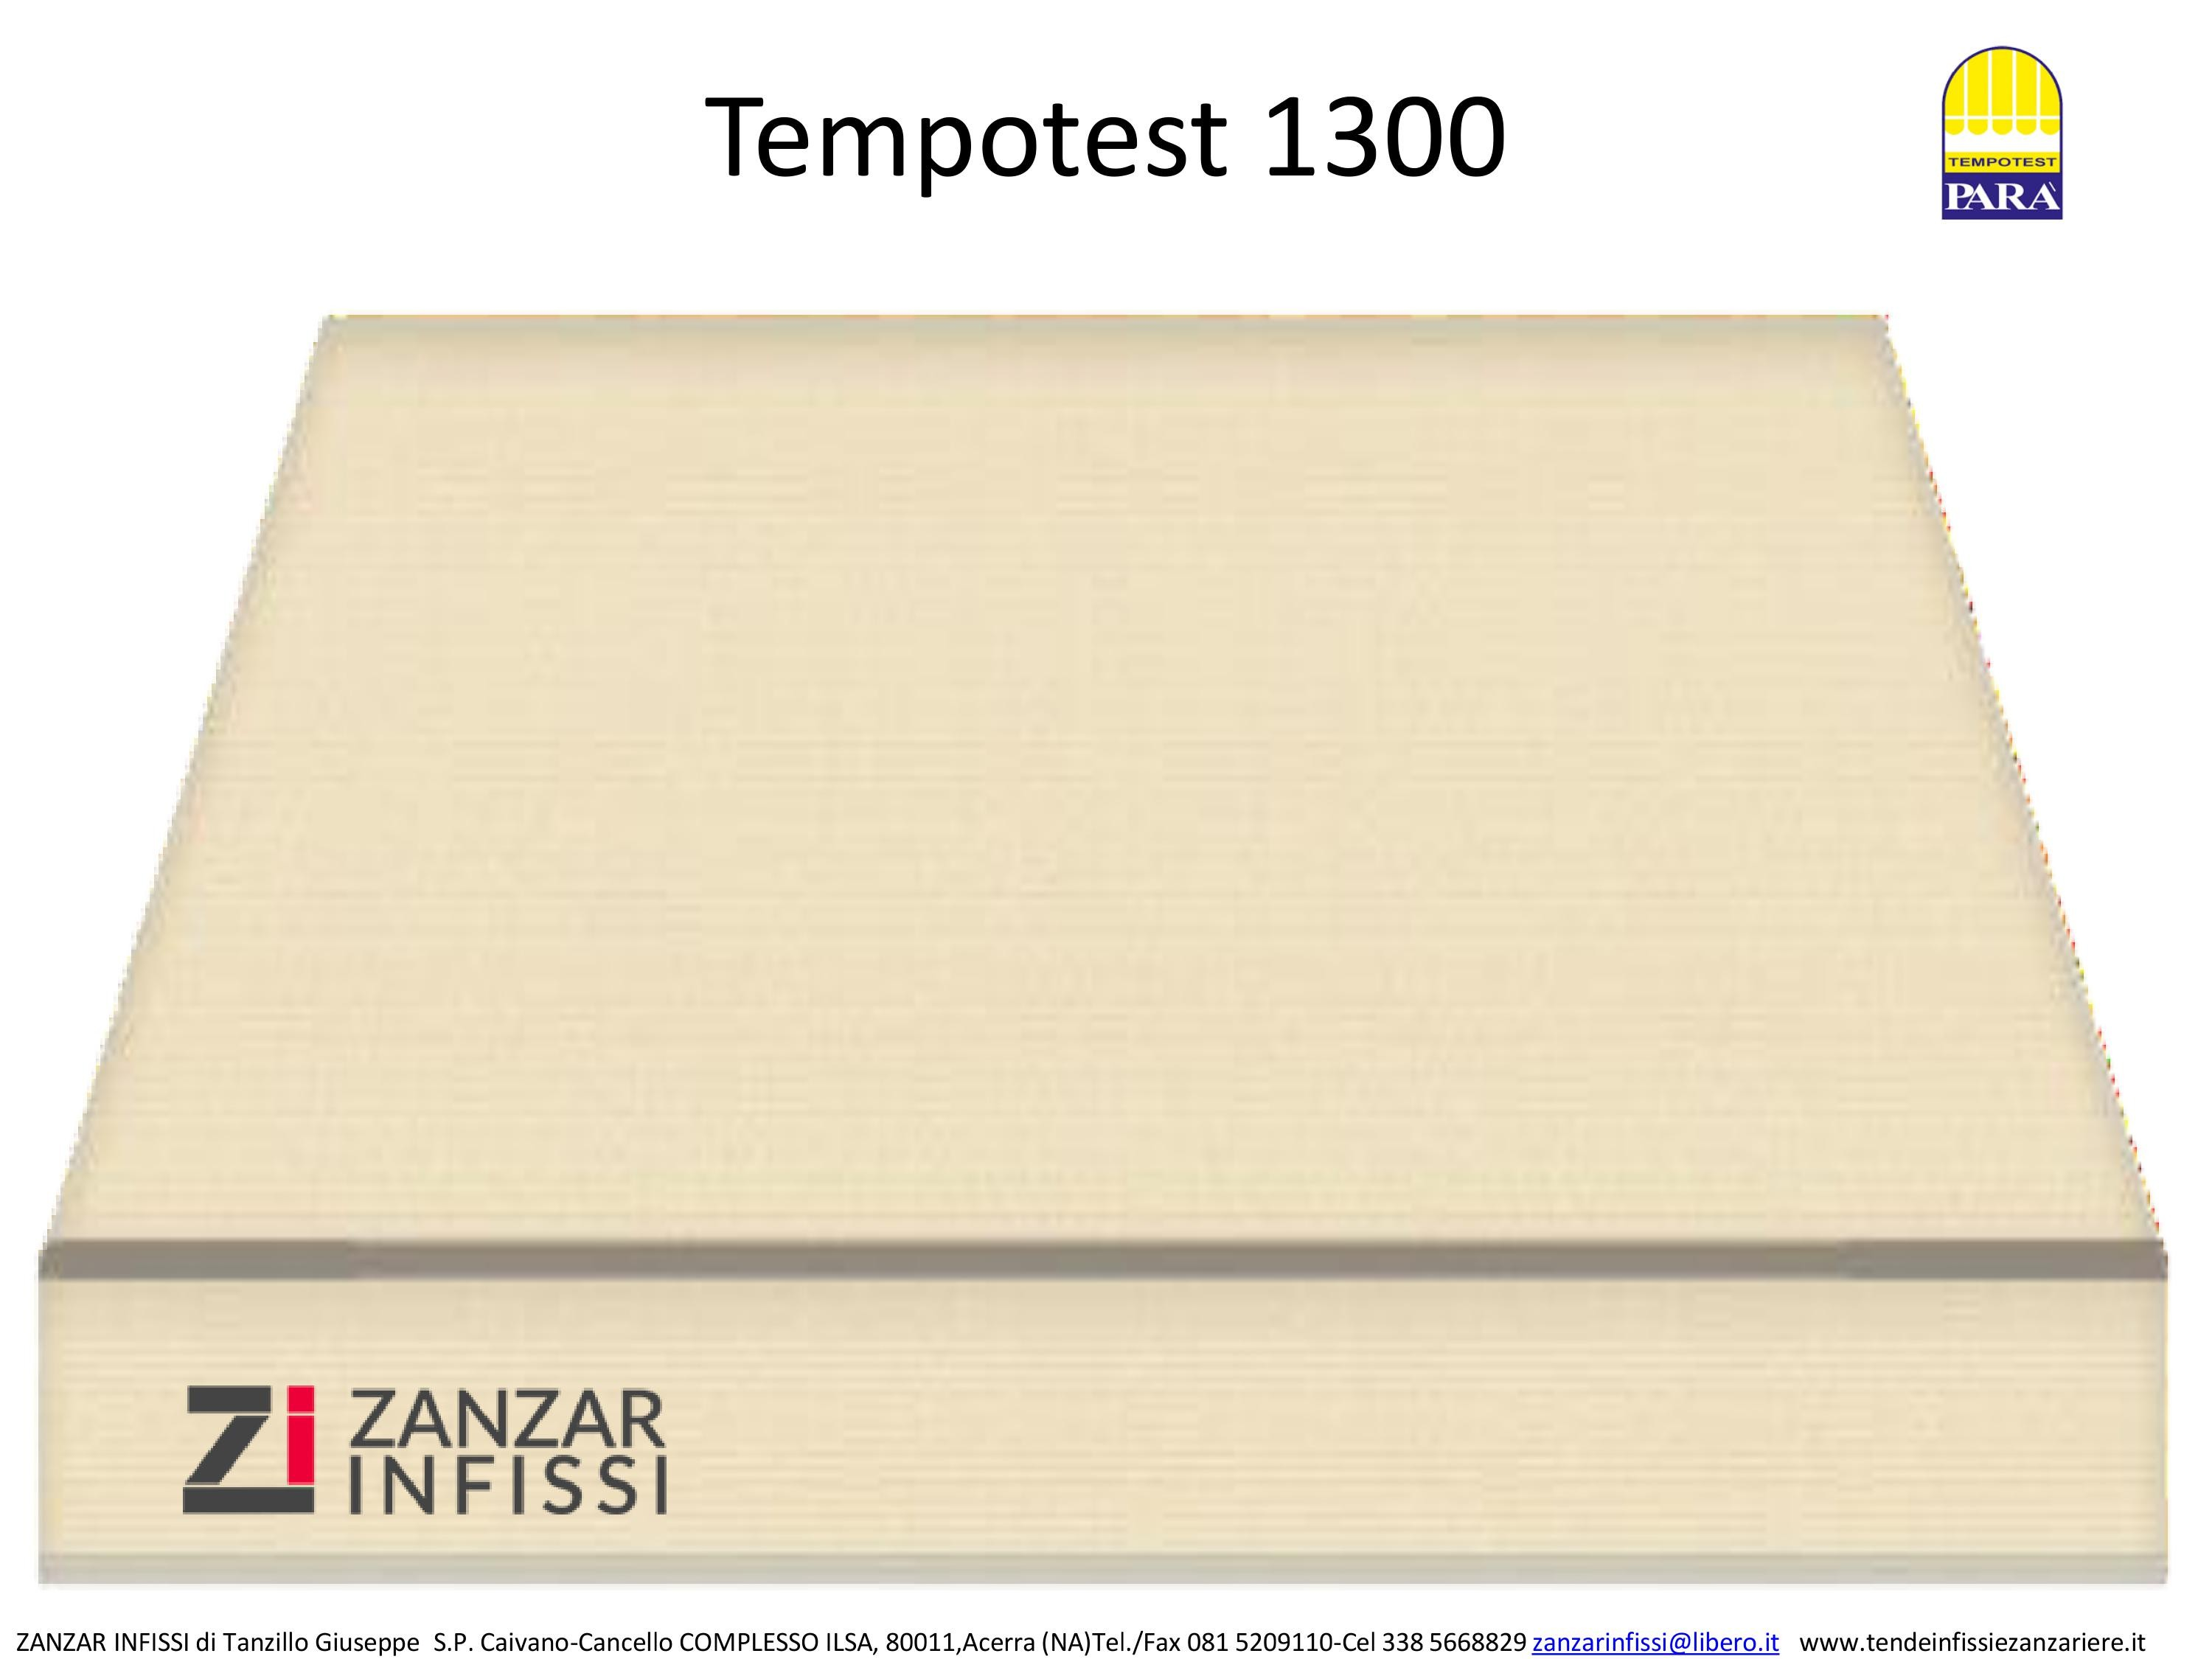 Tempotest 1300